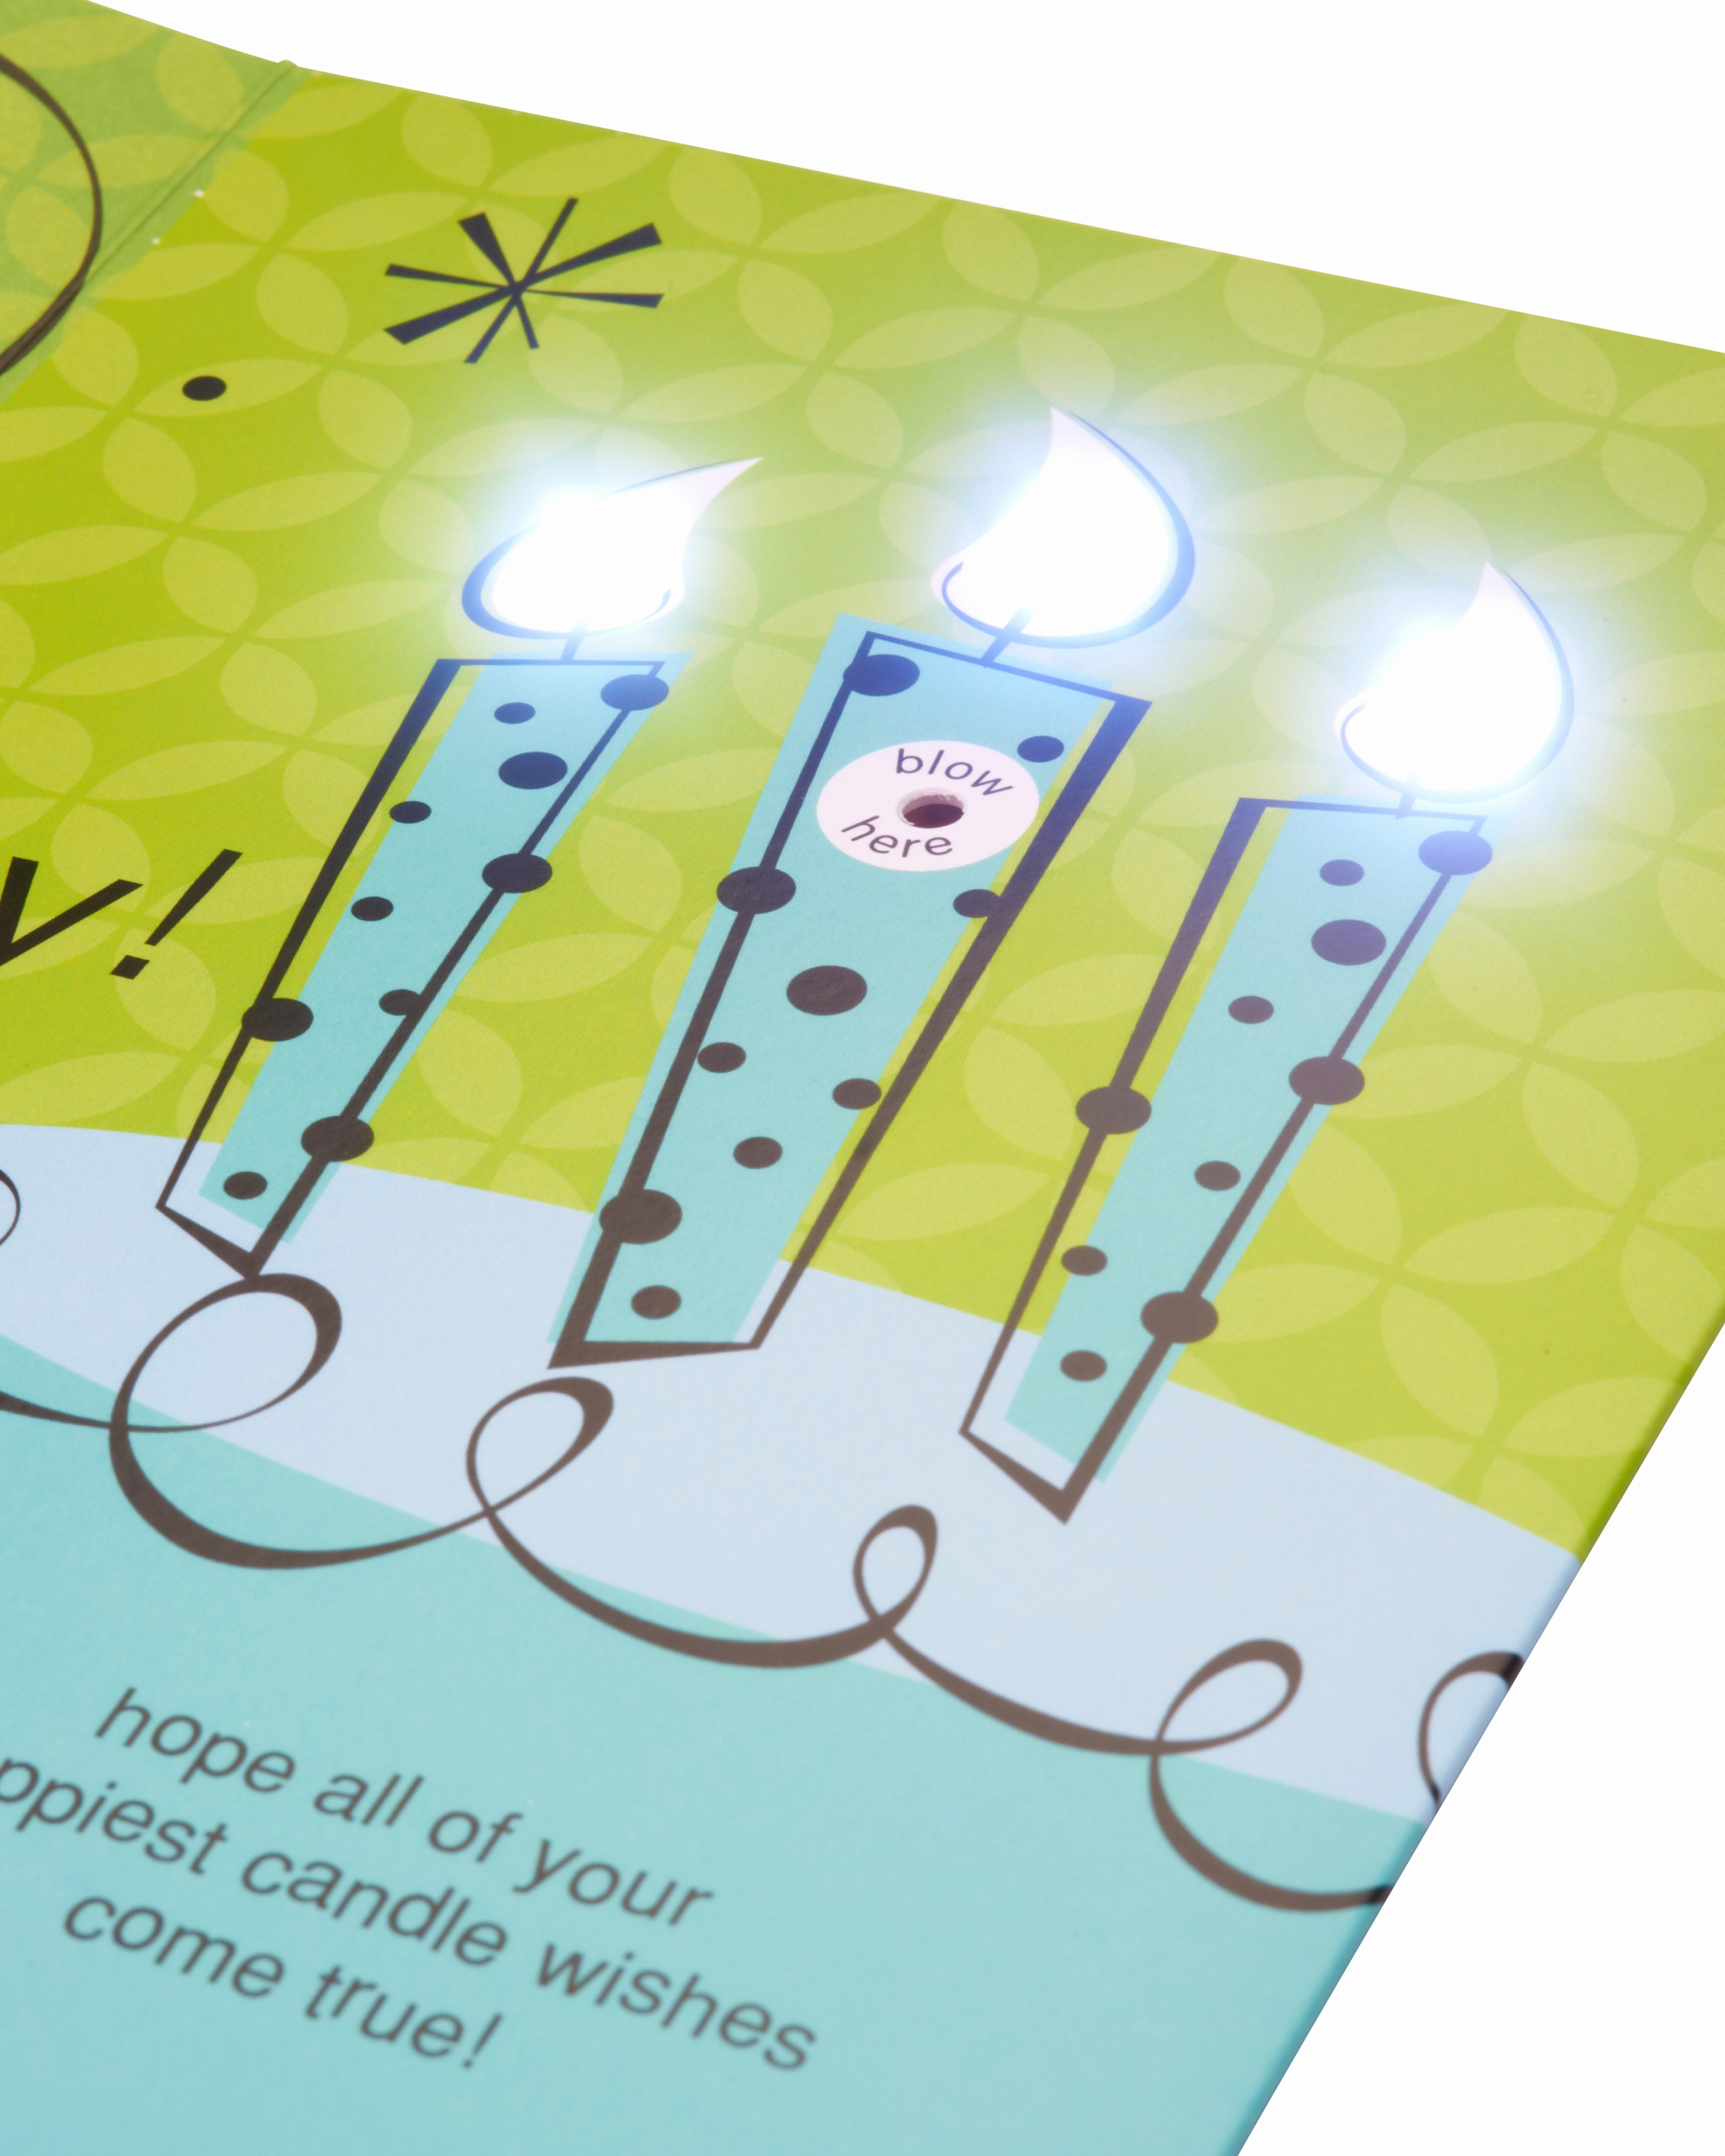 can i blow your birthday candle card ; can-i-blow-your-birthday-candle-card-lovely-5-american-greetings-cake-birthday-card-with-blow-out-candles-of-can-i-blow-your-birthday-candle-card